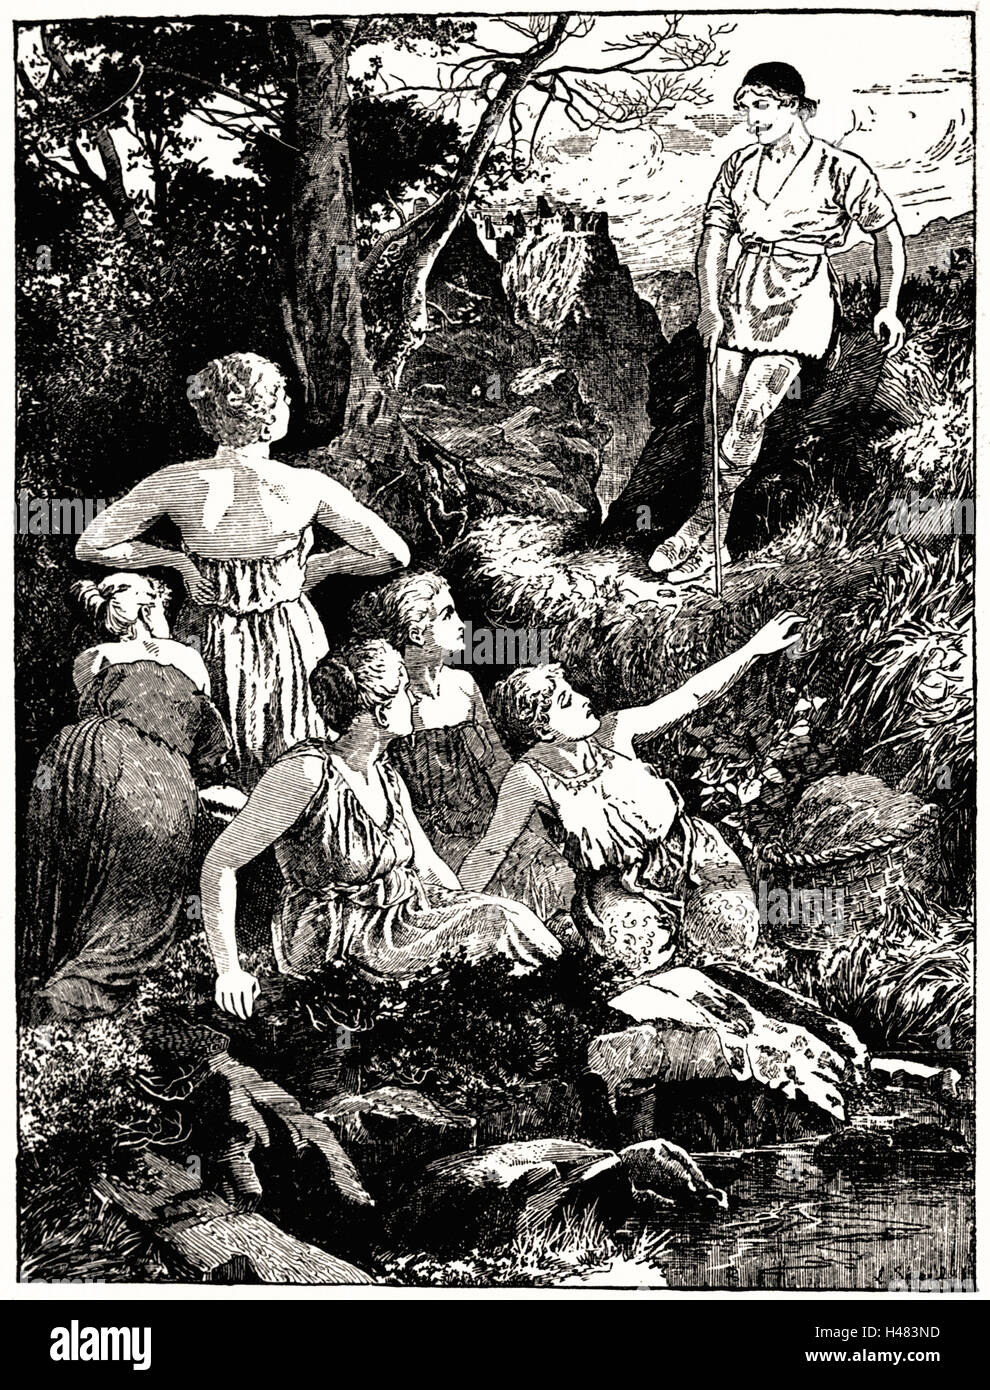 Page 40 illustration in The Red Fairy Book (1890) - Stock Image